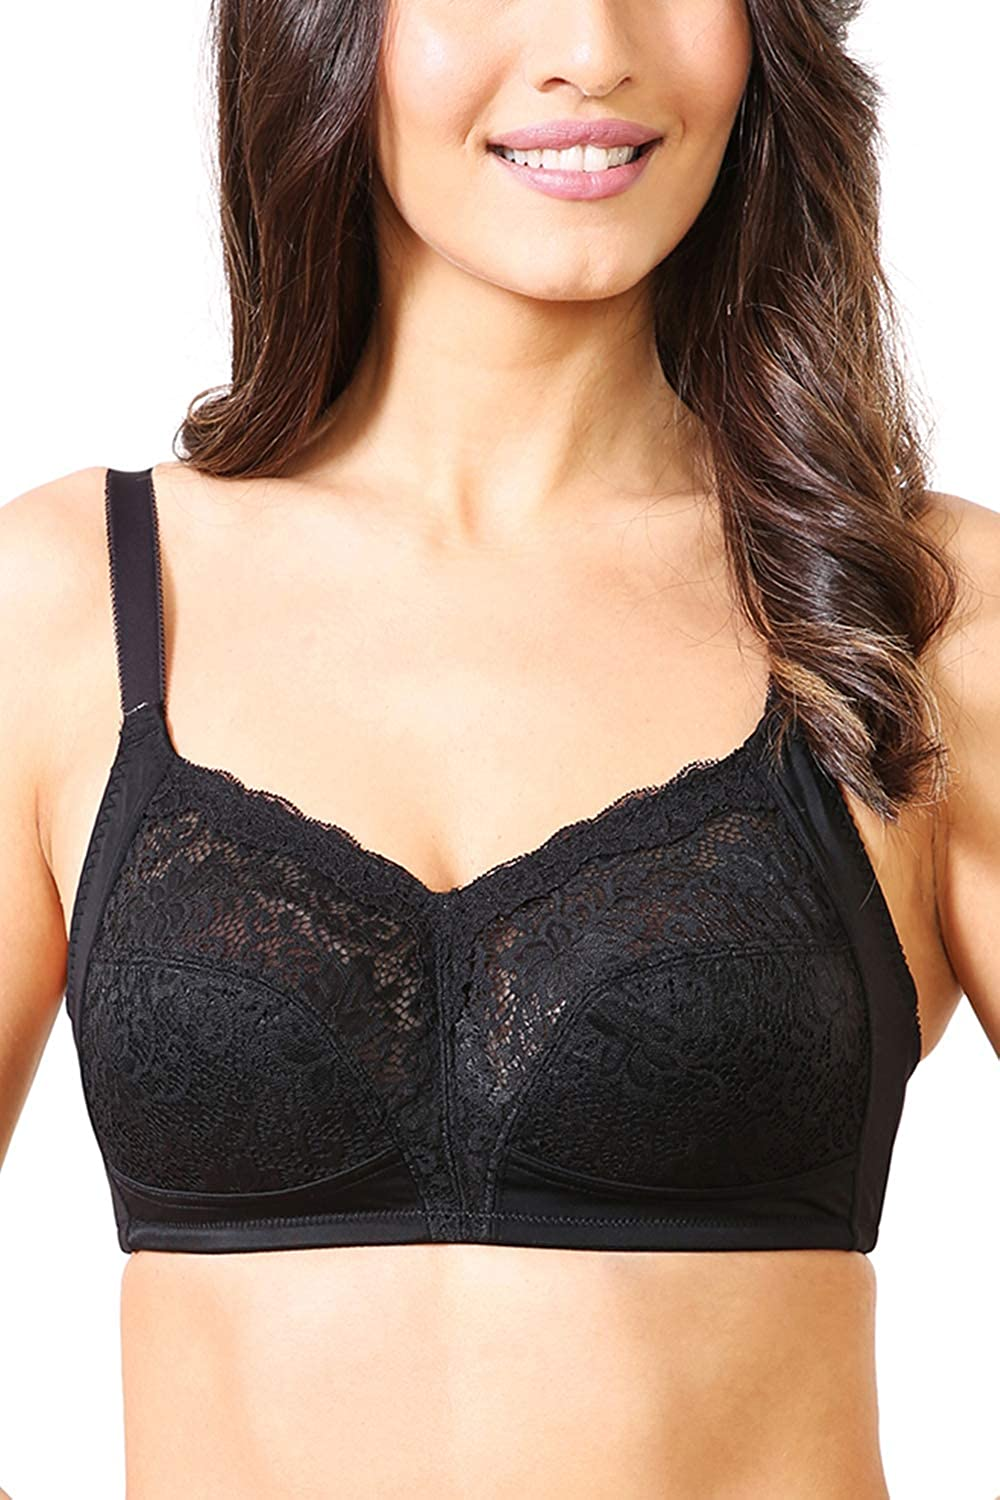 df41c0be3d1 Van Heusen Women s Non Padded Non Wired Full Support Plus Size Bra   Amazon.in  Clothing   Accessories